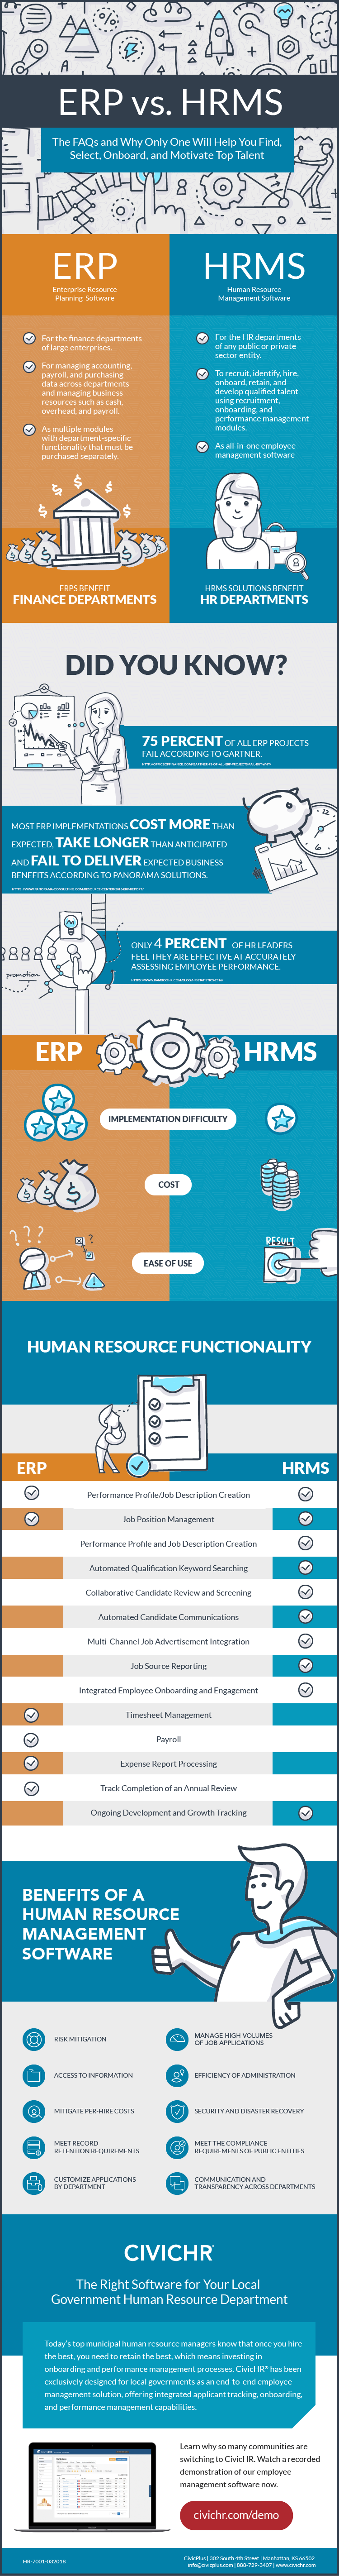 CHR-Infographic-ERP-VS-HRMS-032118